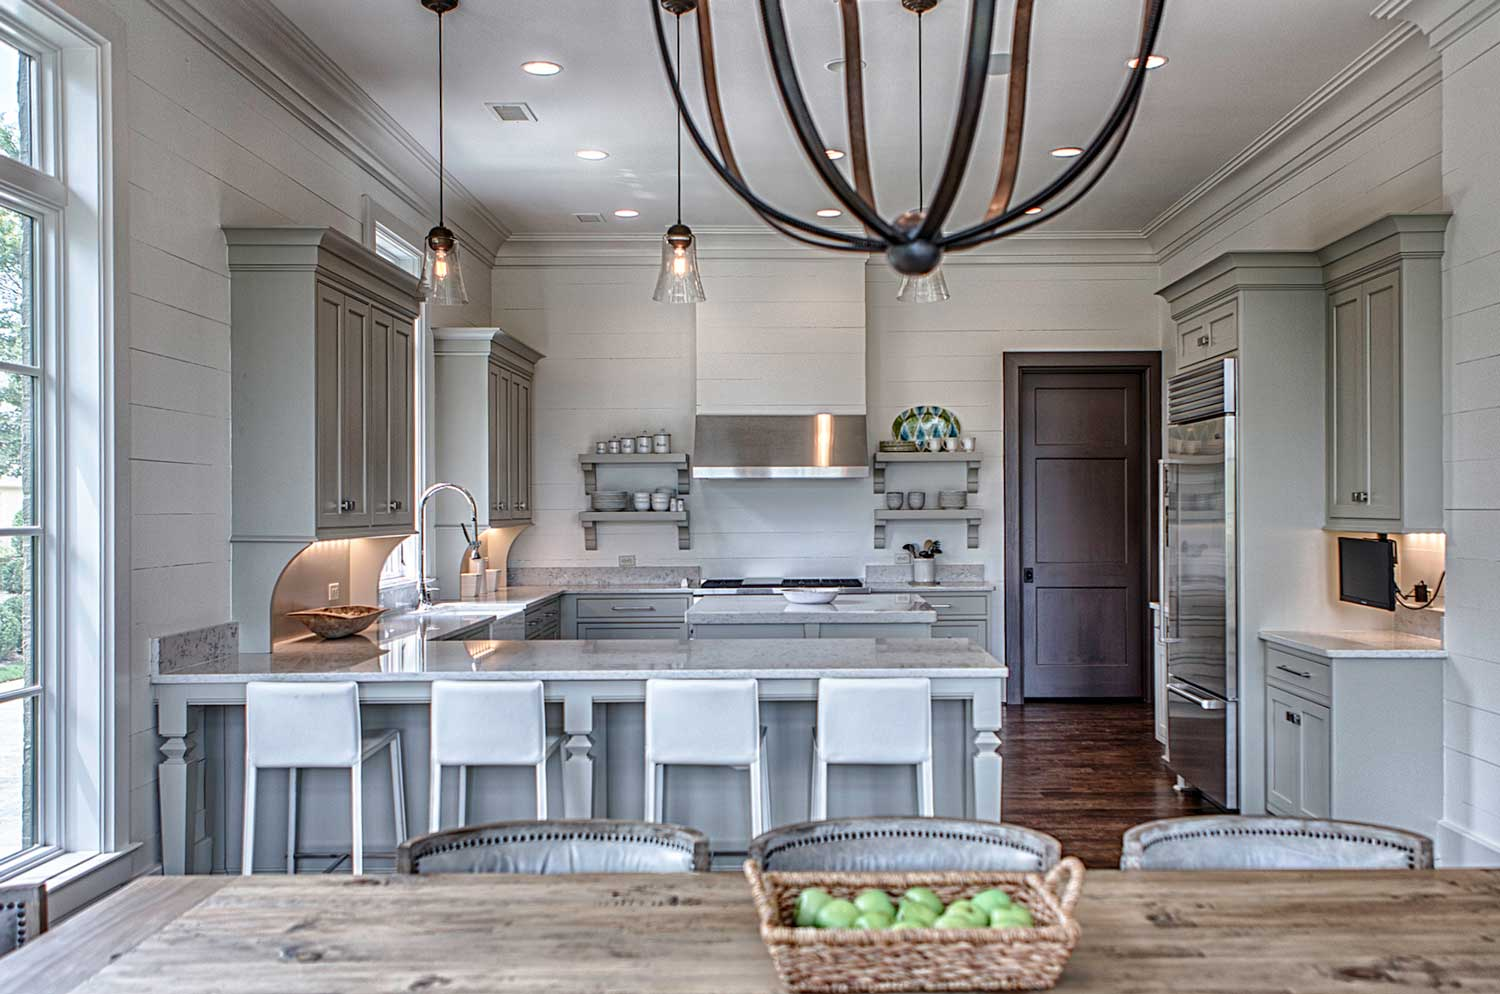 The dining table in the foreground was sourced from Restoration Hardware.